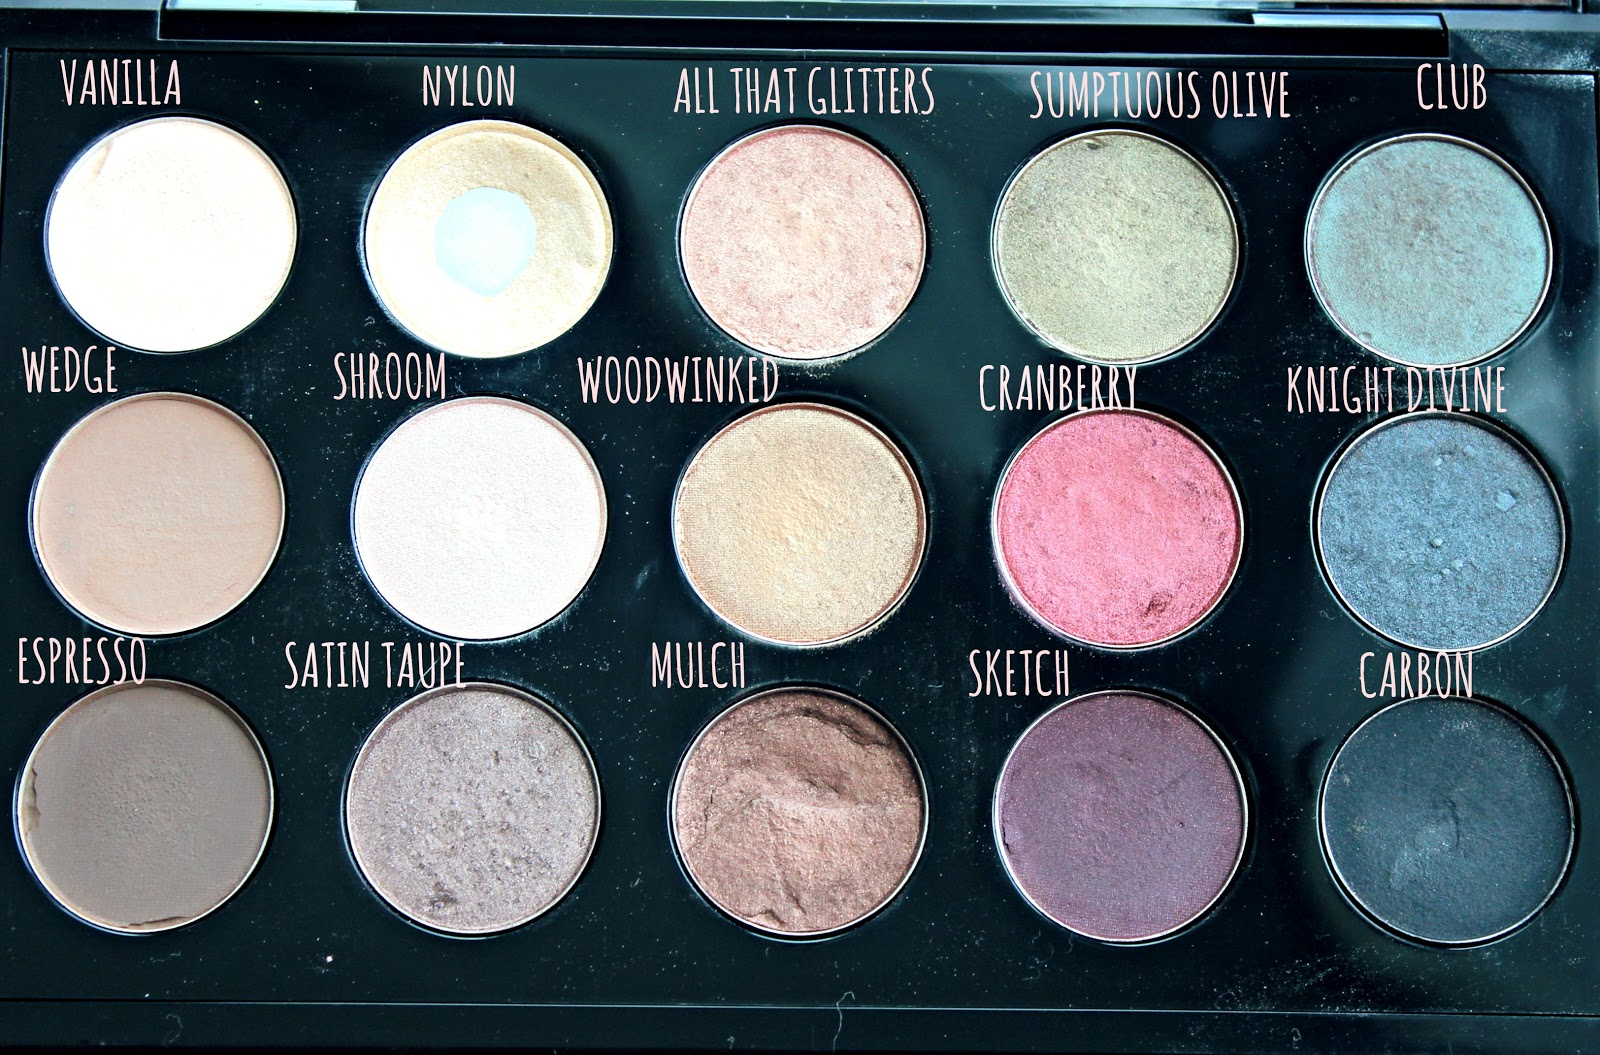 My mac eyeshadow collection swatches 15 pan pro palette my mac eyeshadow palette mac eyeshadow collection mac eyeshadow swatches neutral mac eyeshadows thecheapjerseys Image collections